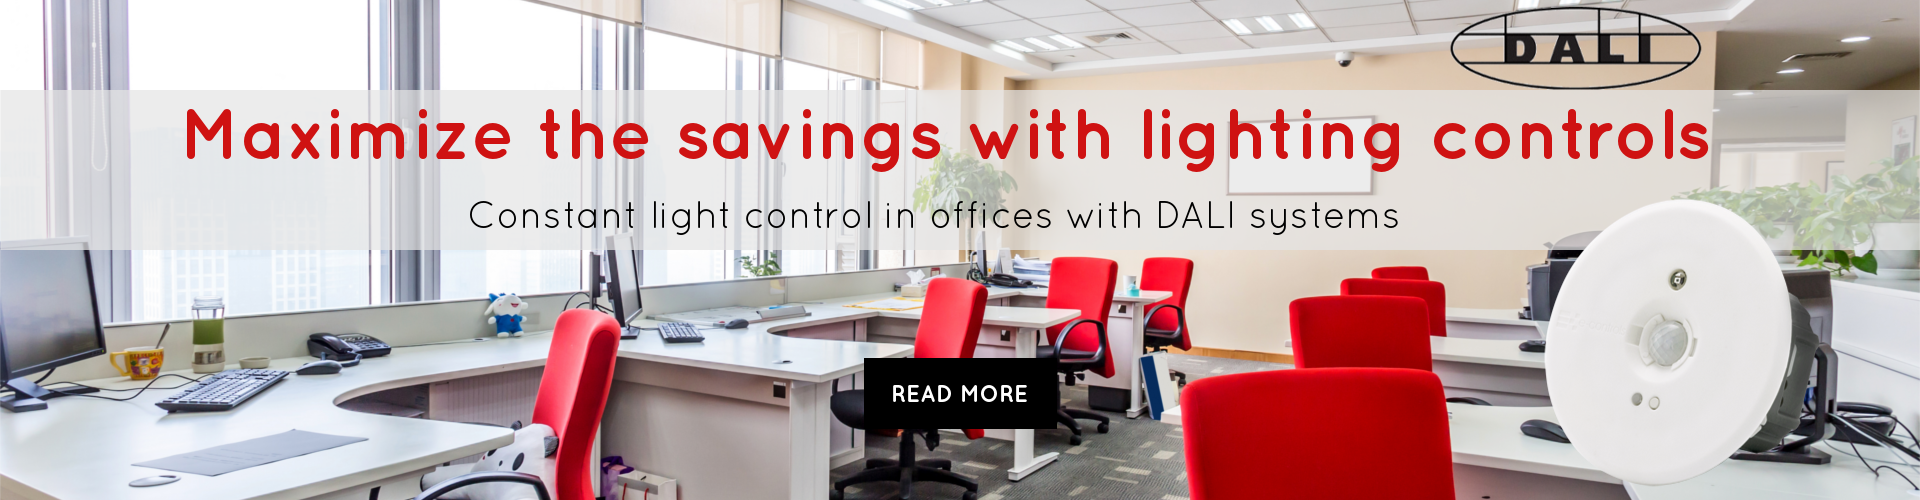 Maximize the savings with lighting controls constant light control in offices with DALI systems